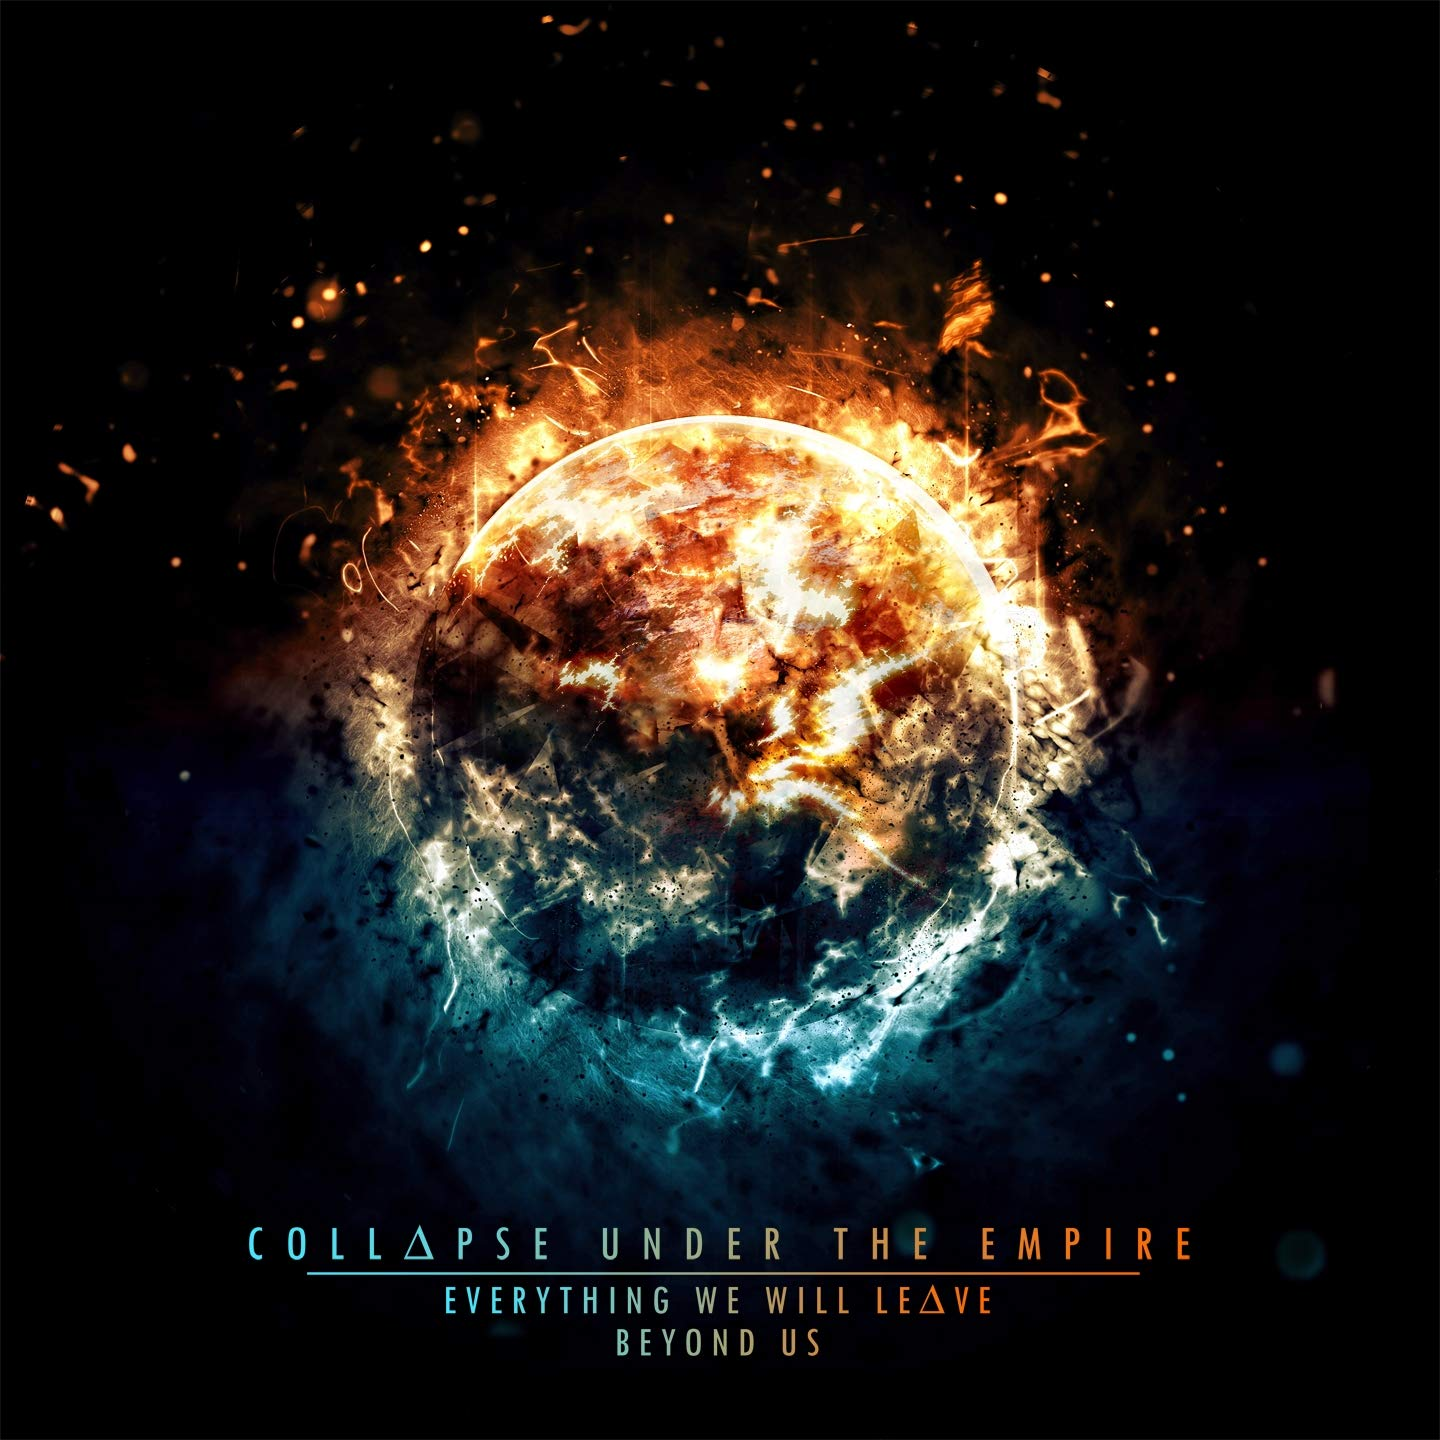 Collapse Under the Empire - Everything We Will Leave Beyond Us (2020) [FLAC] Download